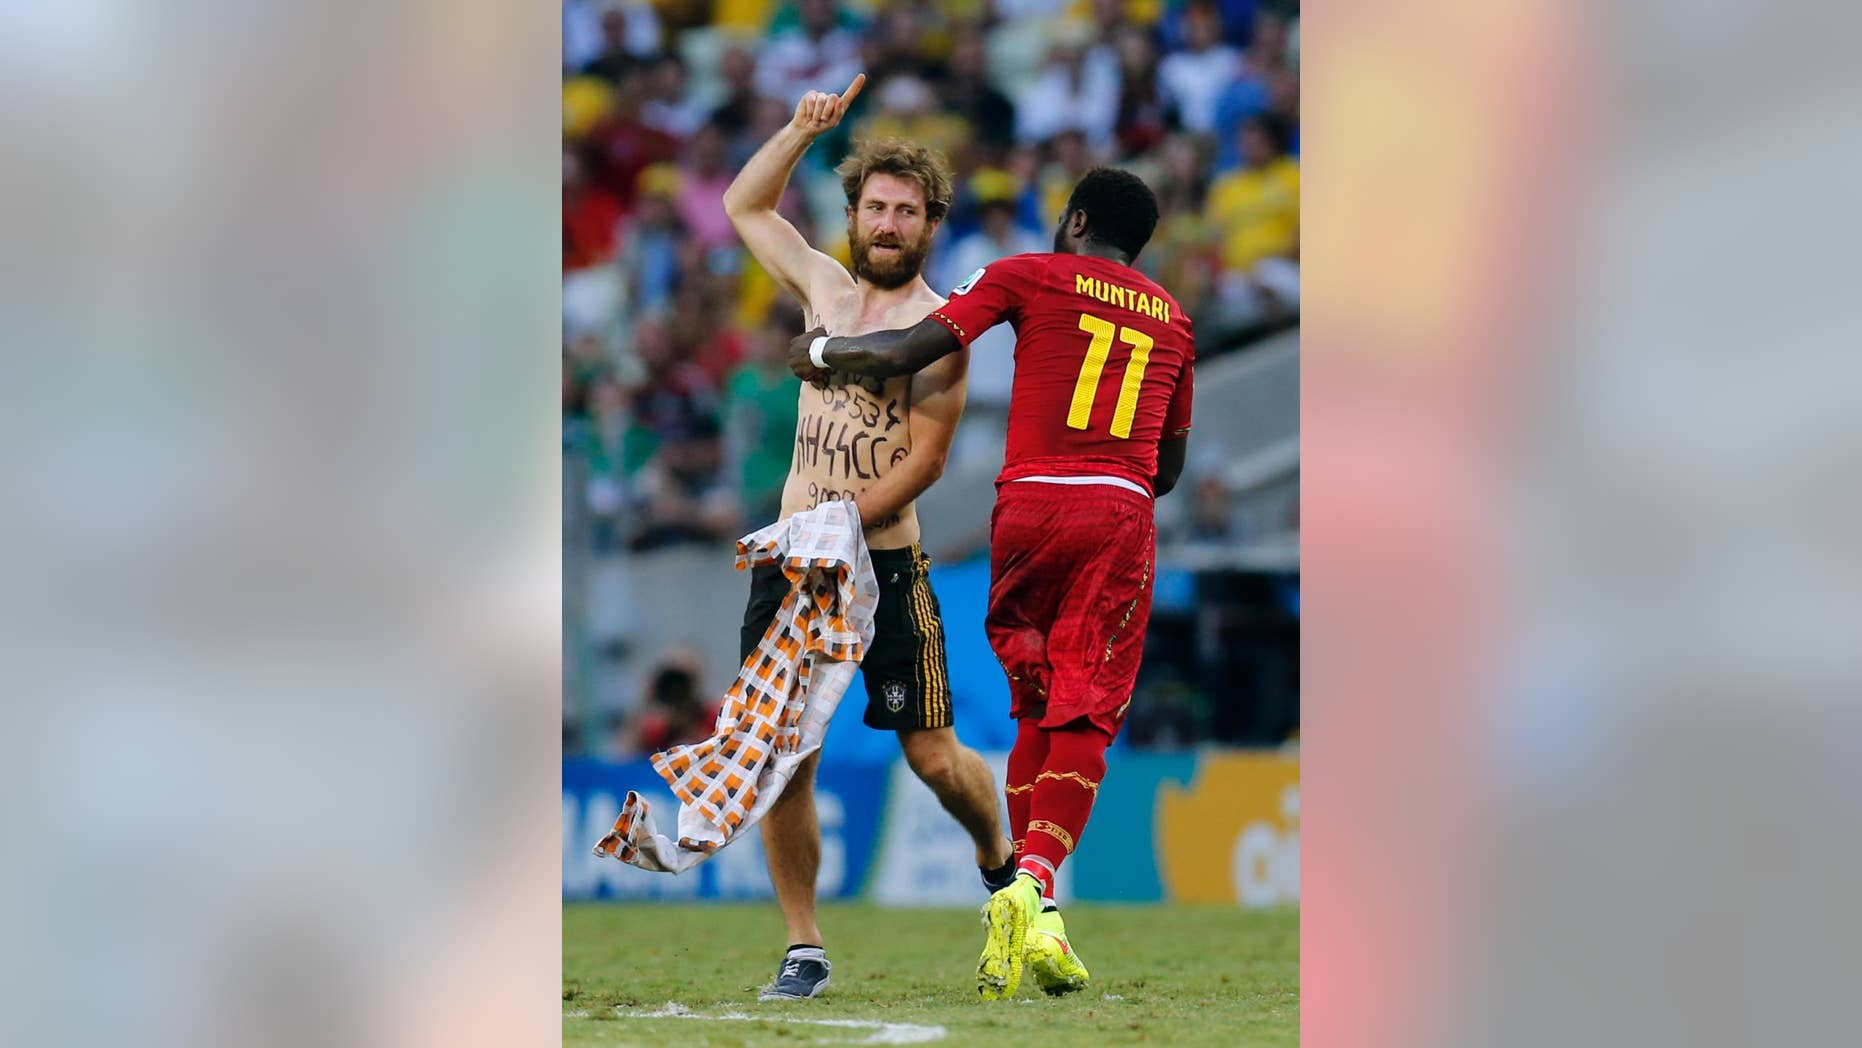 Ghana's Sulley Muntari assists a man off the pitch after he ran on during the group G World Cup soccer match between Germany and Ghana at the Arena Castelao in Fortaleza, Brazil, Saturday, June 21, 2014. (AP Photo/Frank Augstein)